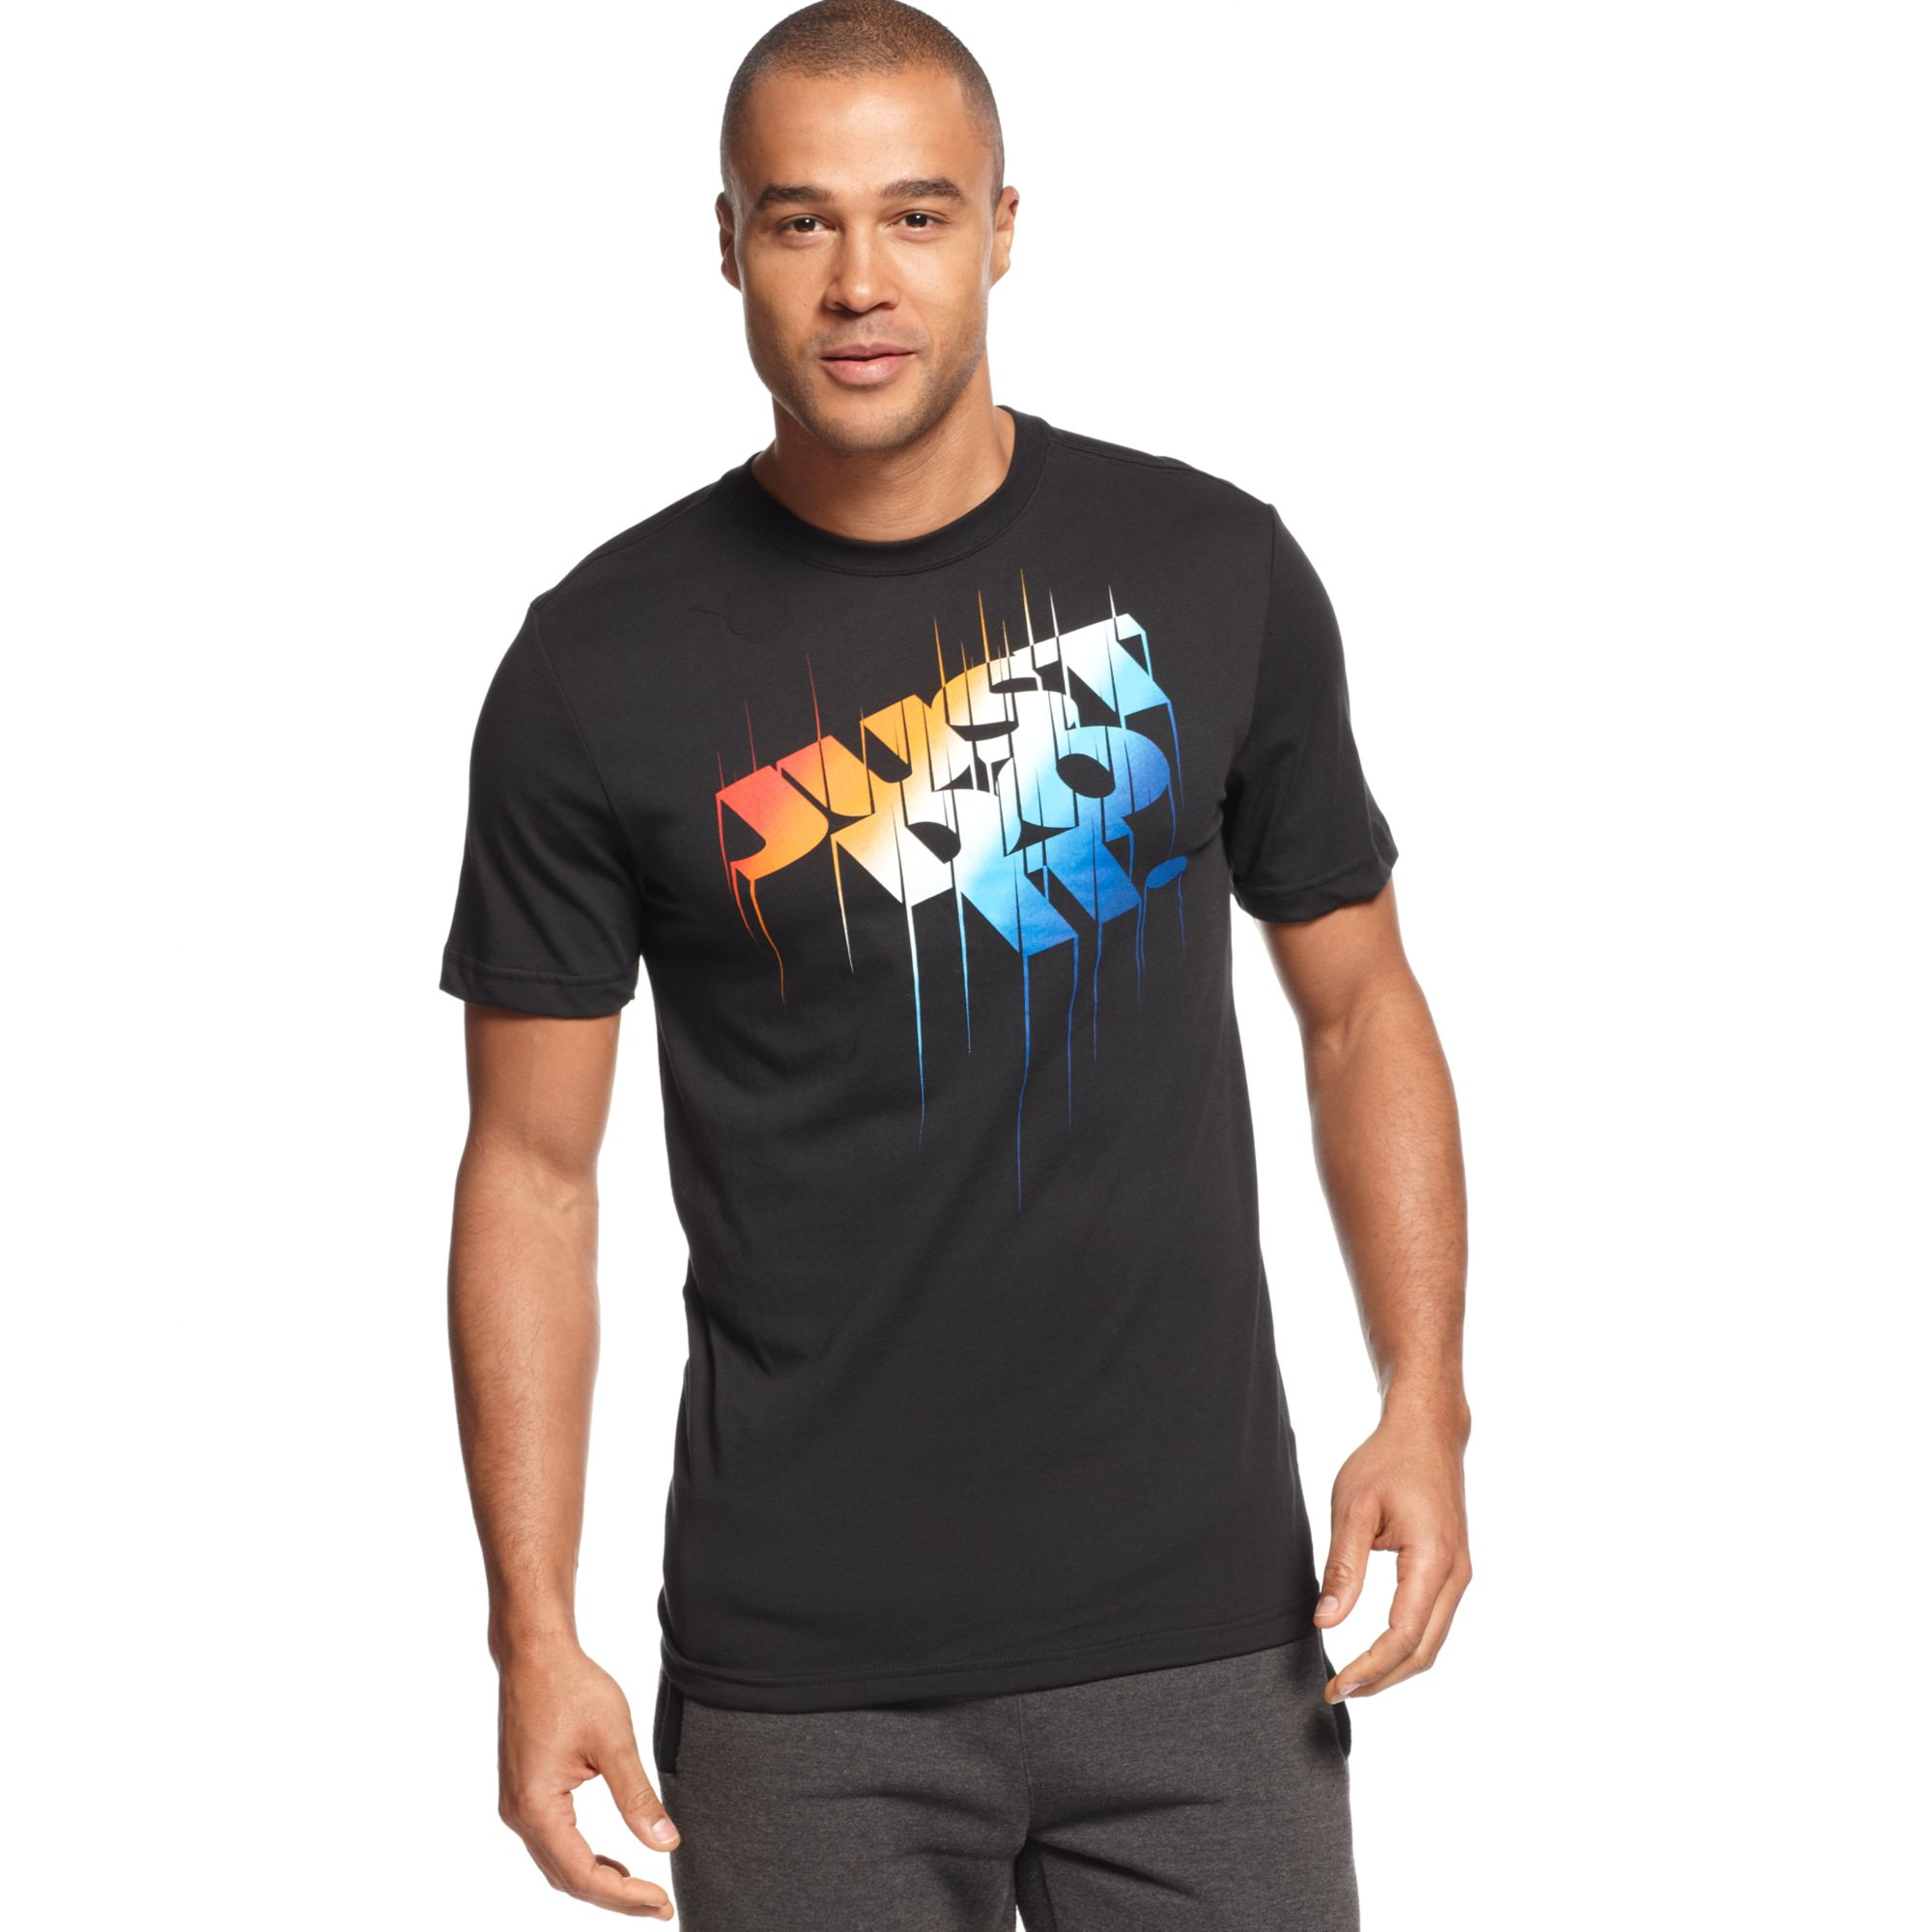 Nike Just Do It Tshirt In Black For Men Lyst